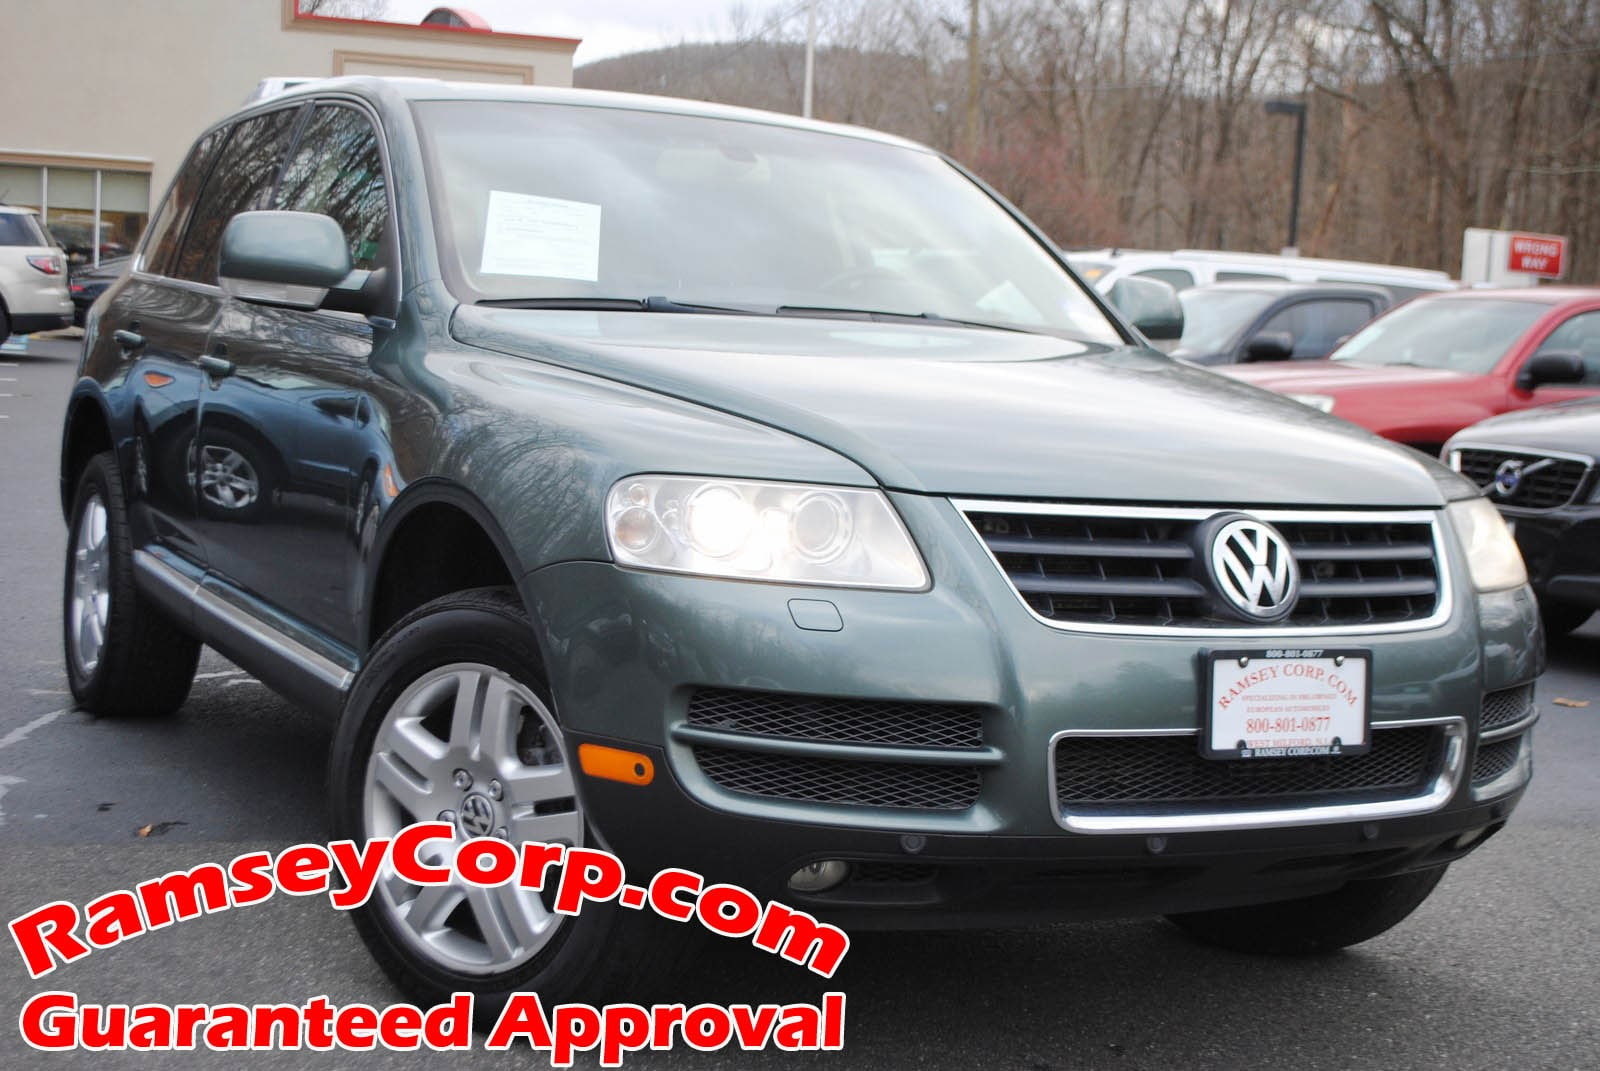 used 2004 volkswagen touareg for sale west milford nj rh ramseycorp com 2004 Volkswagen Touareg Blue 2004 Volkswagen Touareg Interior